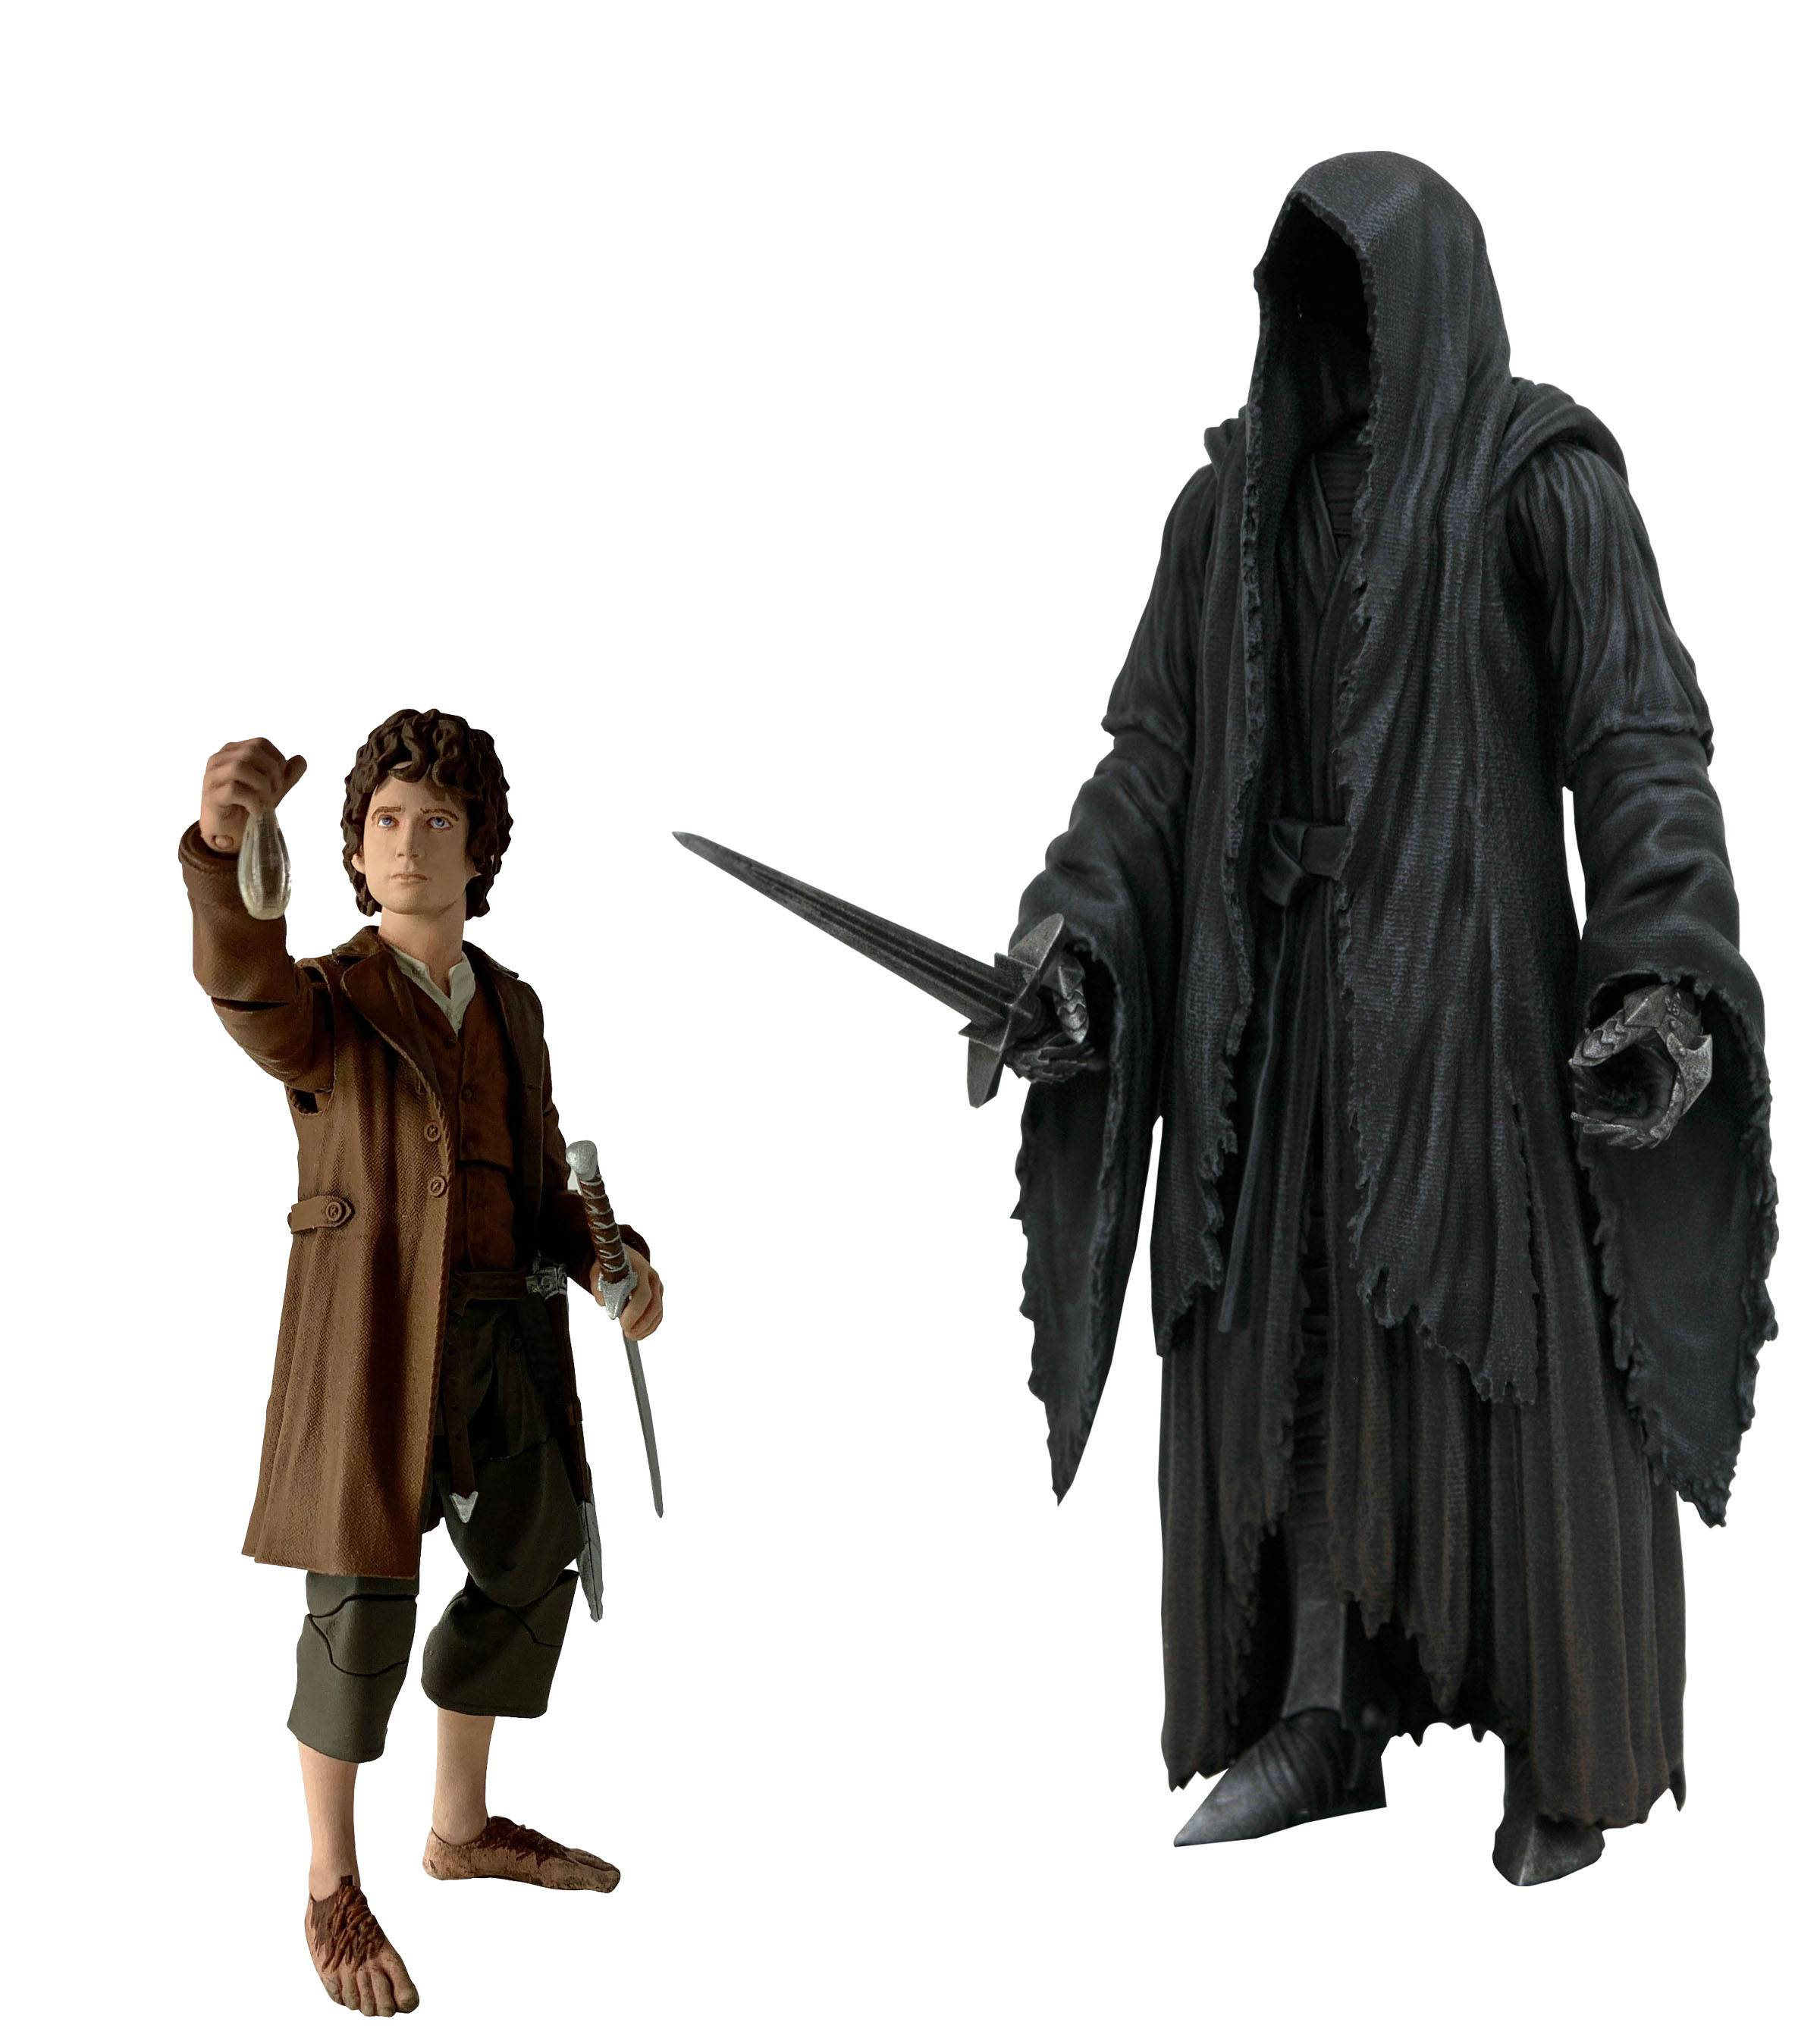 LORD OF THE RINGS SERIES 2 FIGURE ASST